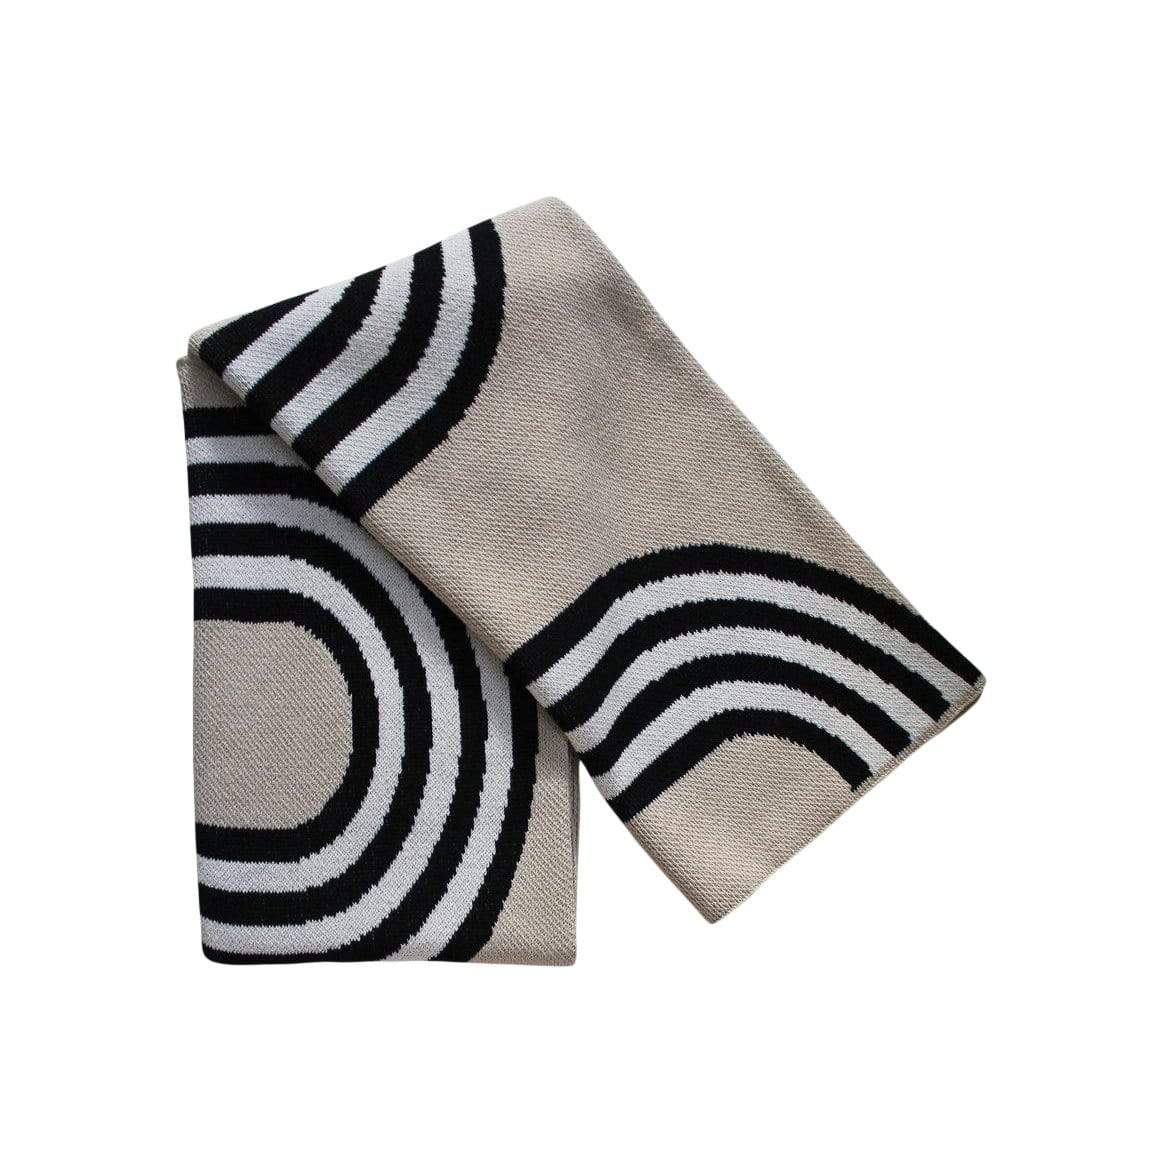 Happy Habitat Cushions + Throws 78th Street Black + Linen Throw